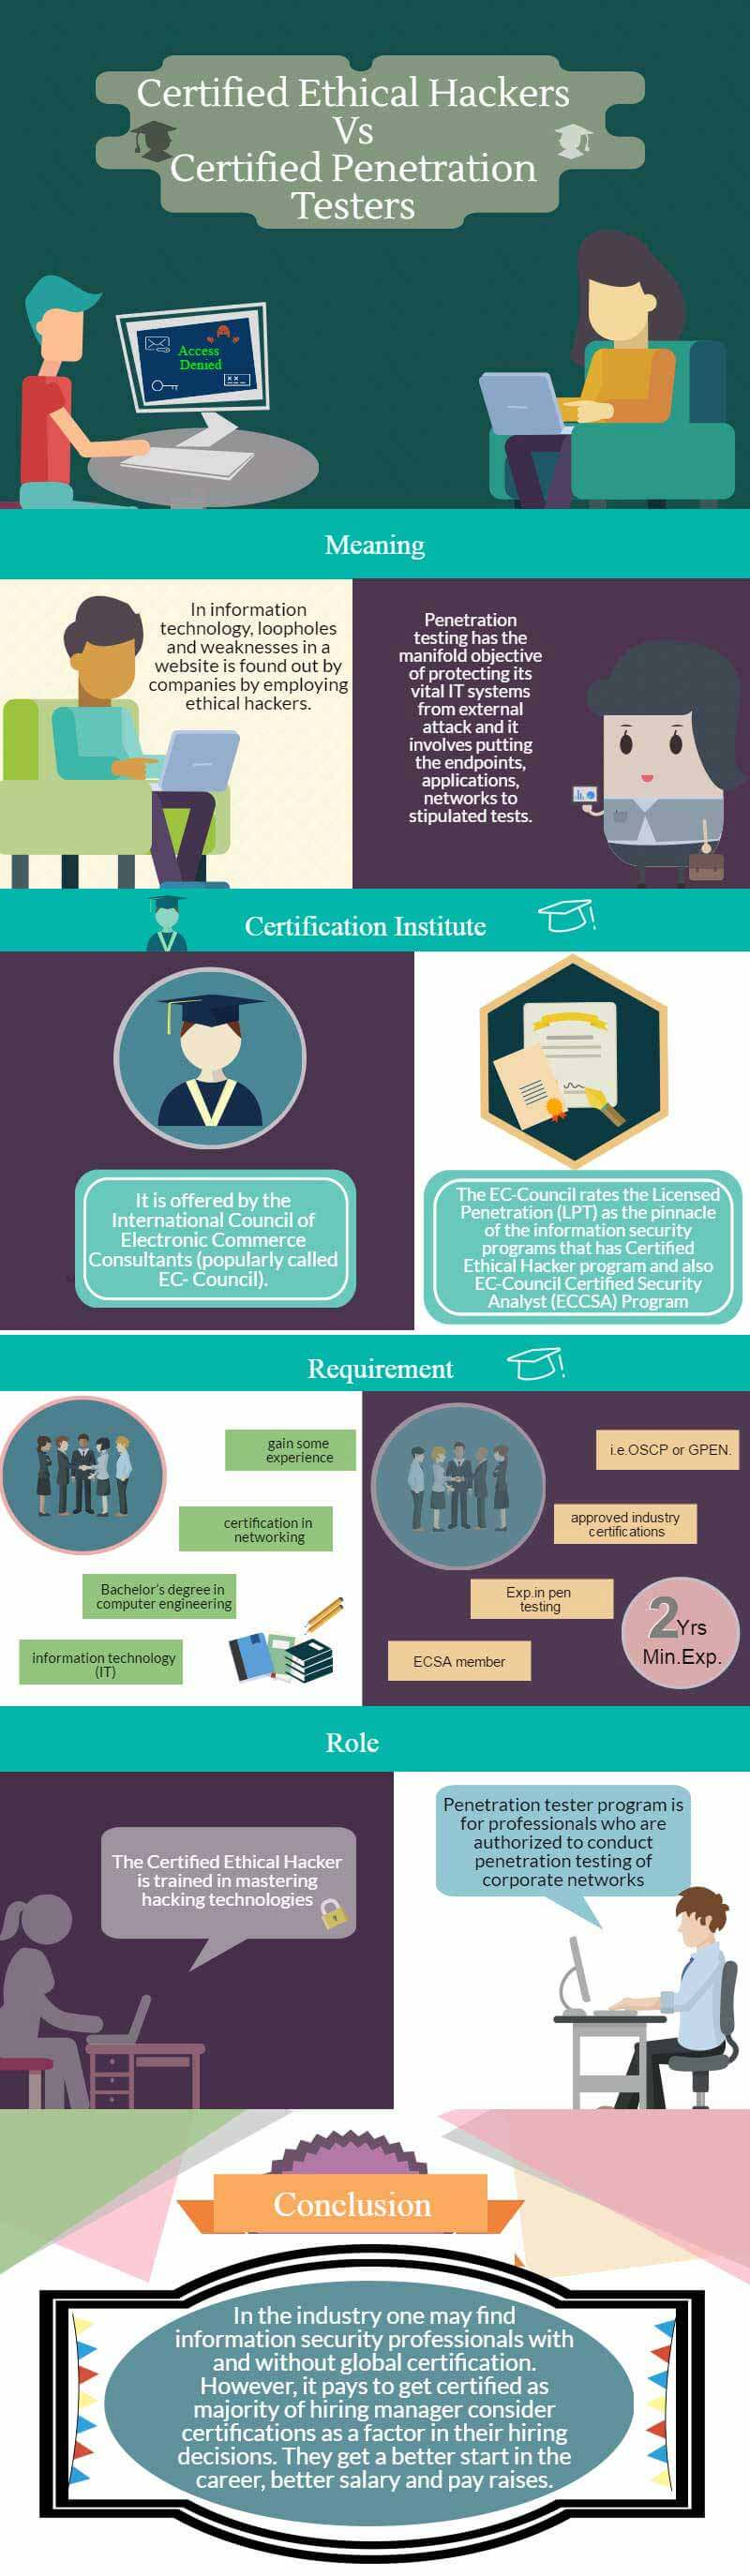 Certified Ethical Hacker vs Certified Penetration Testers infogrpahics